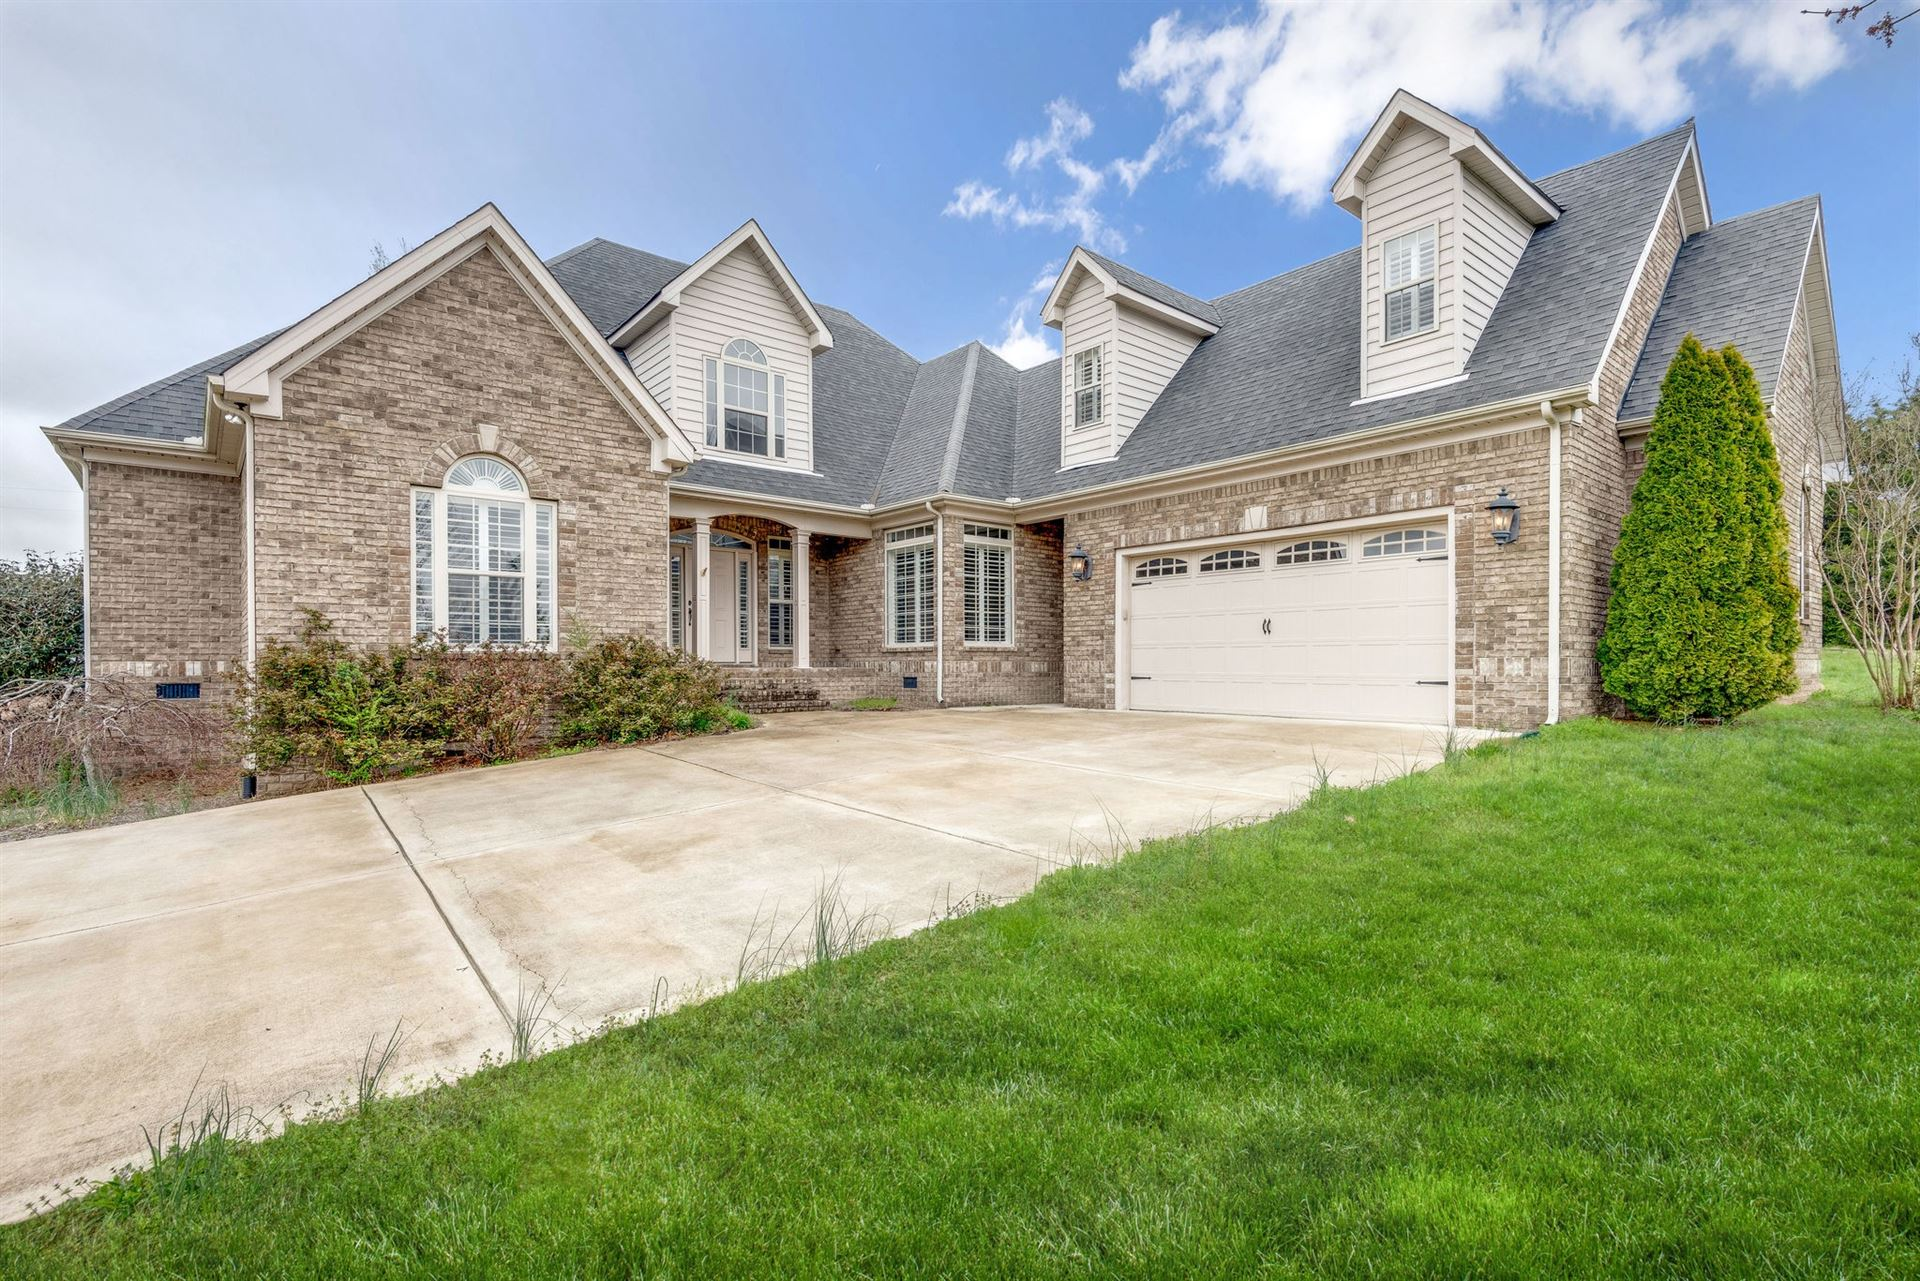 Photo of 4504 Christy Ln, Spring Hill, TN 37174 (MLS # 2136246)